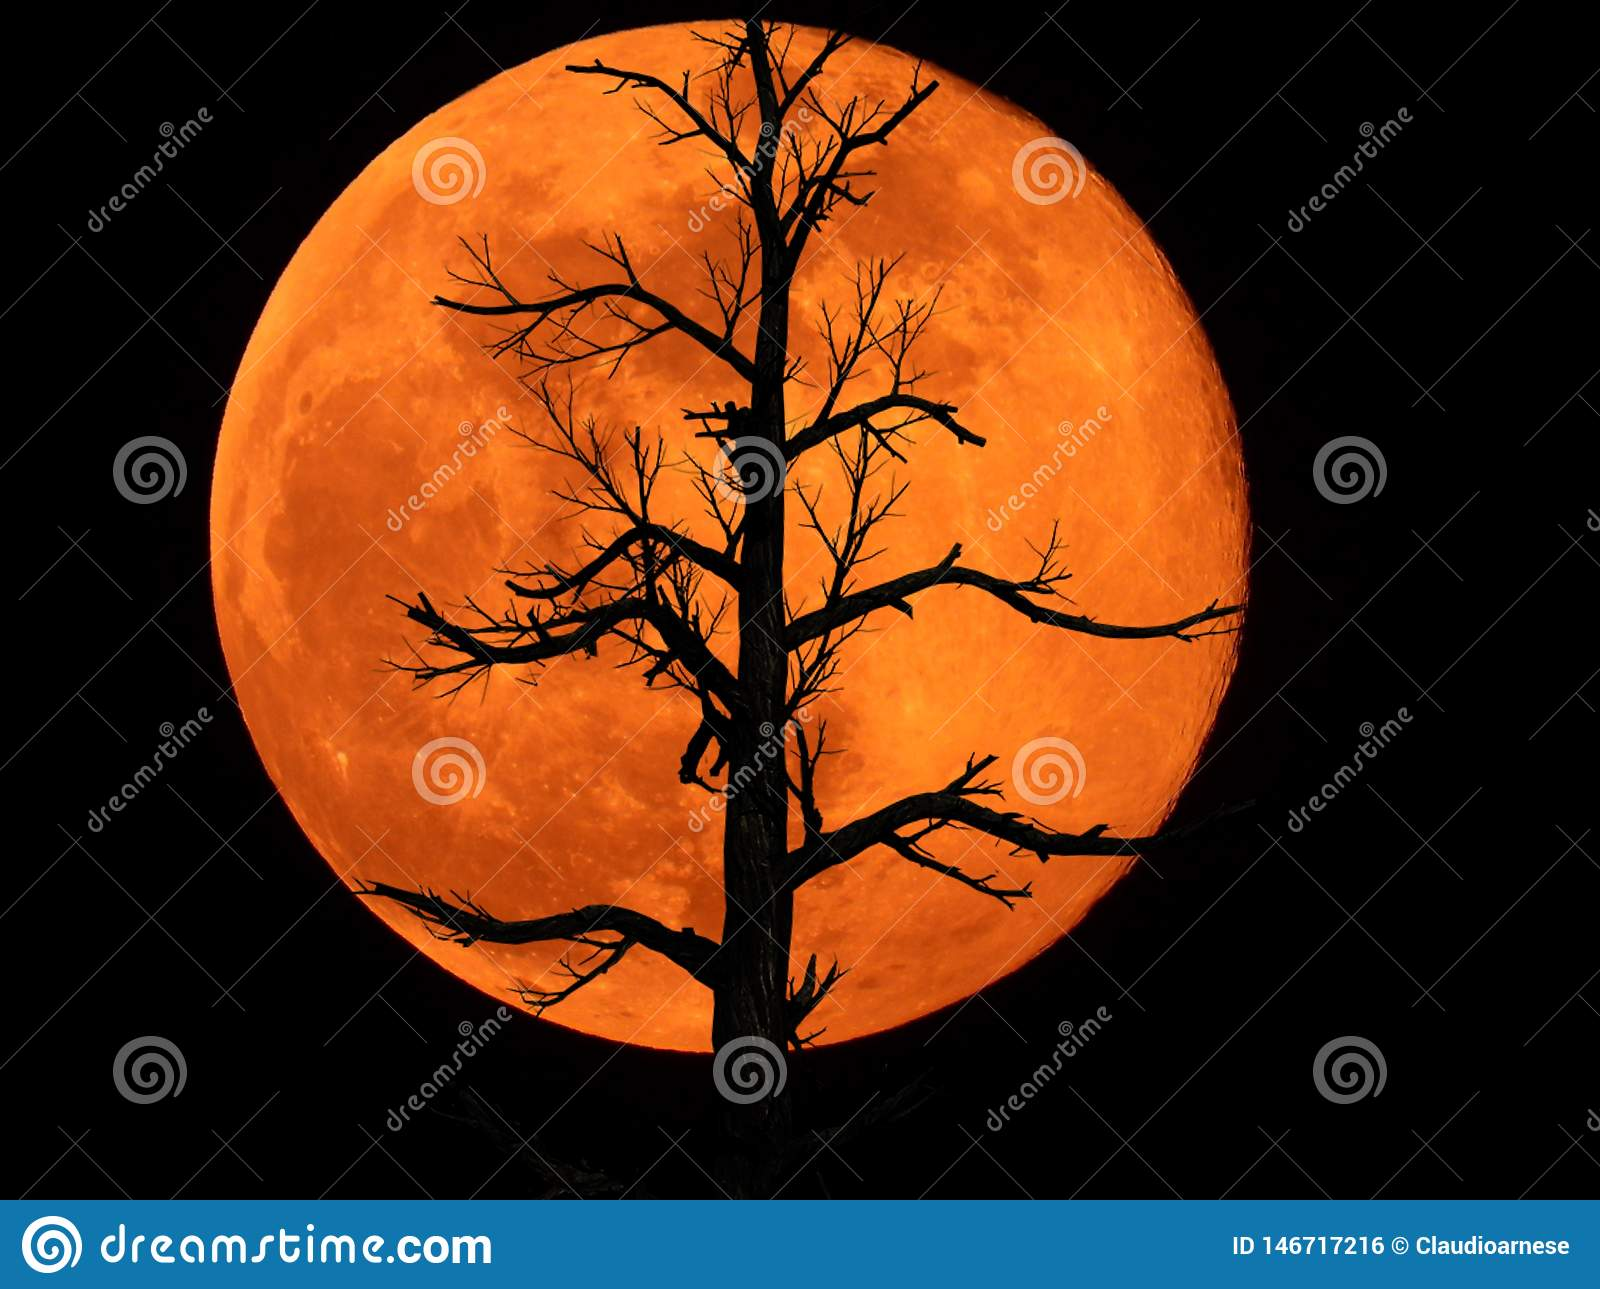 Full Moon with Dead Plant